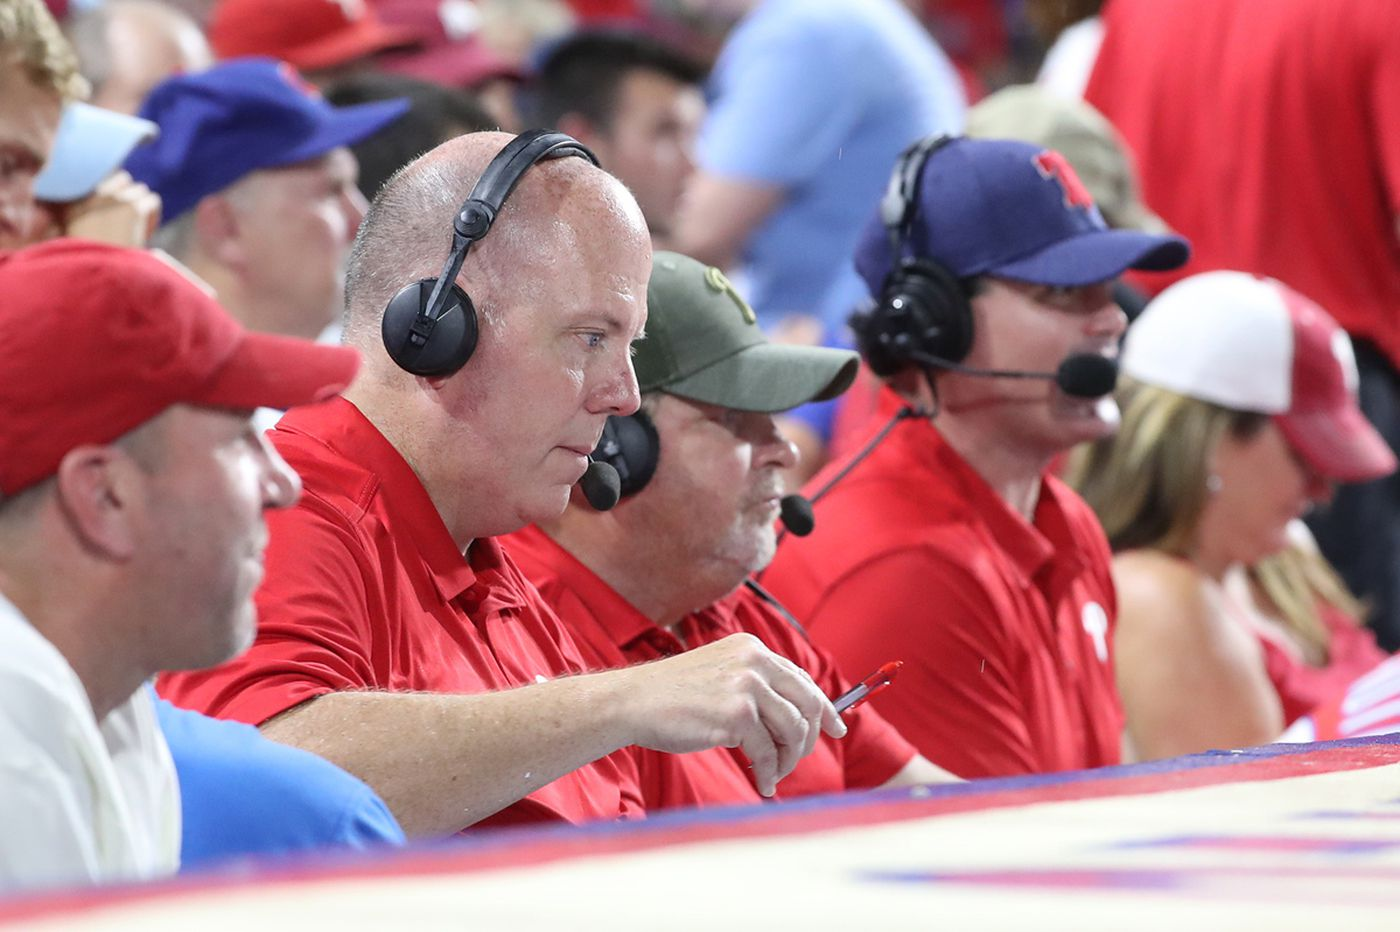 Phillies, MLB broadcasters expected to call 2020 road games from off-site location, source says